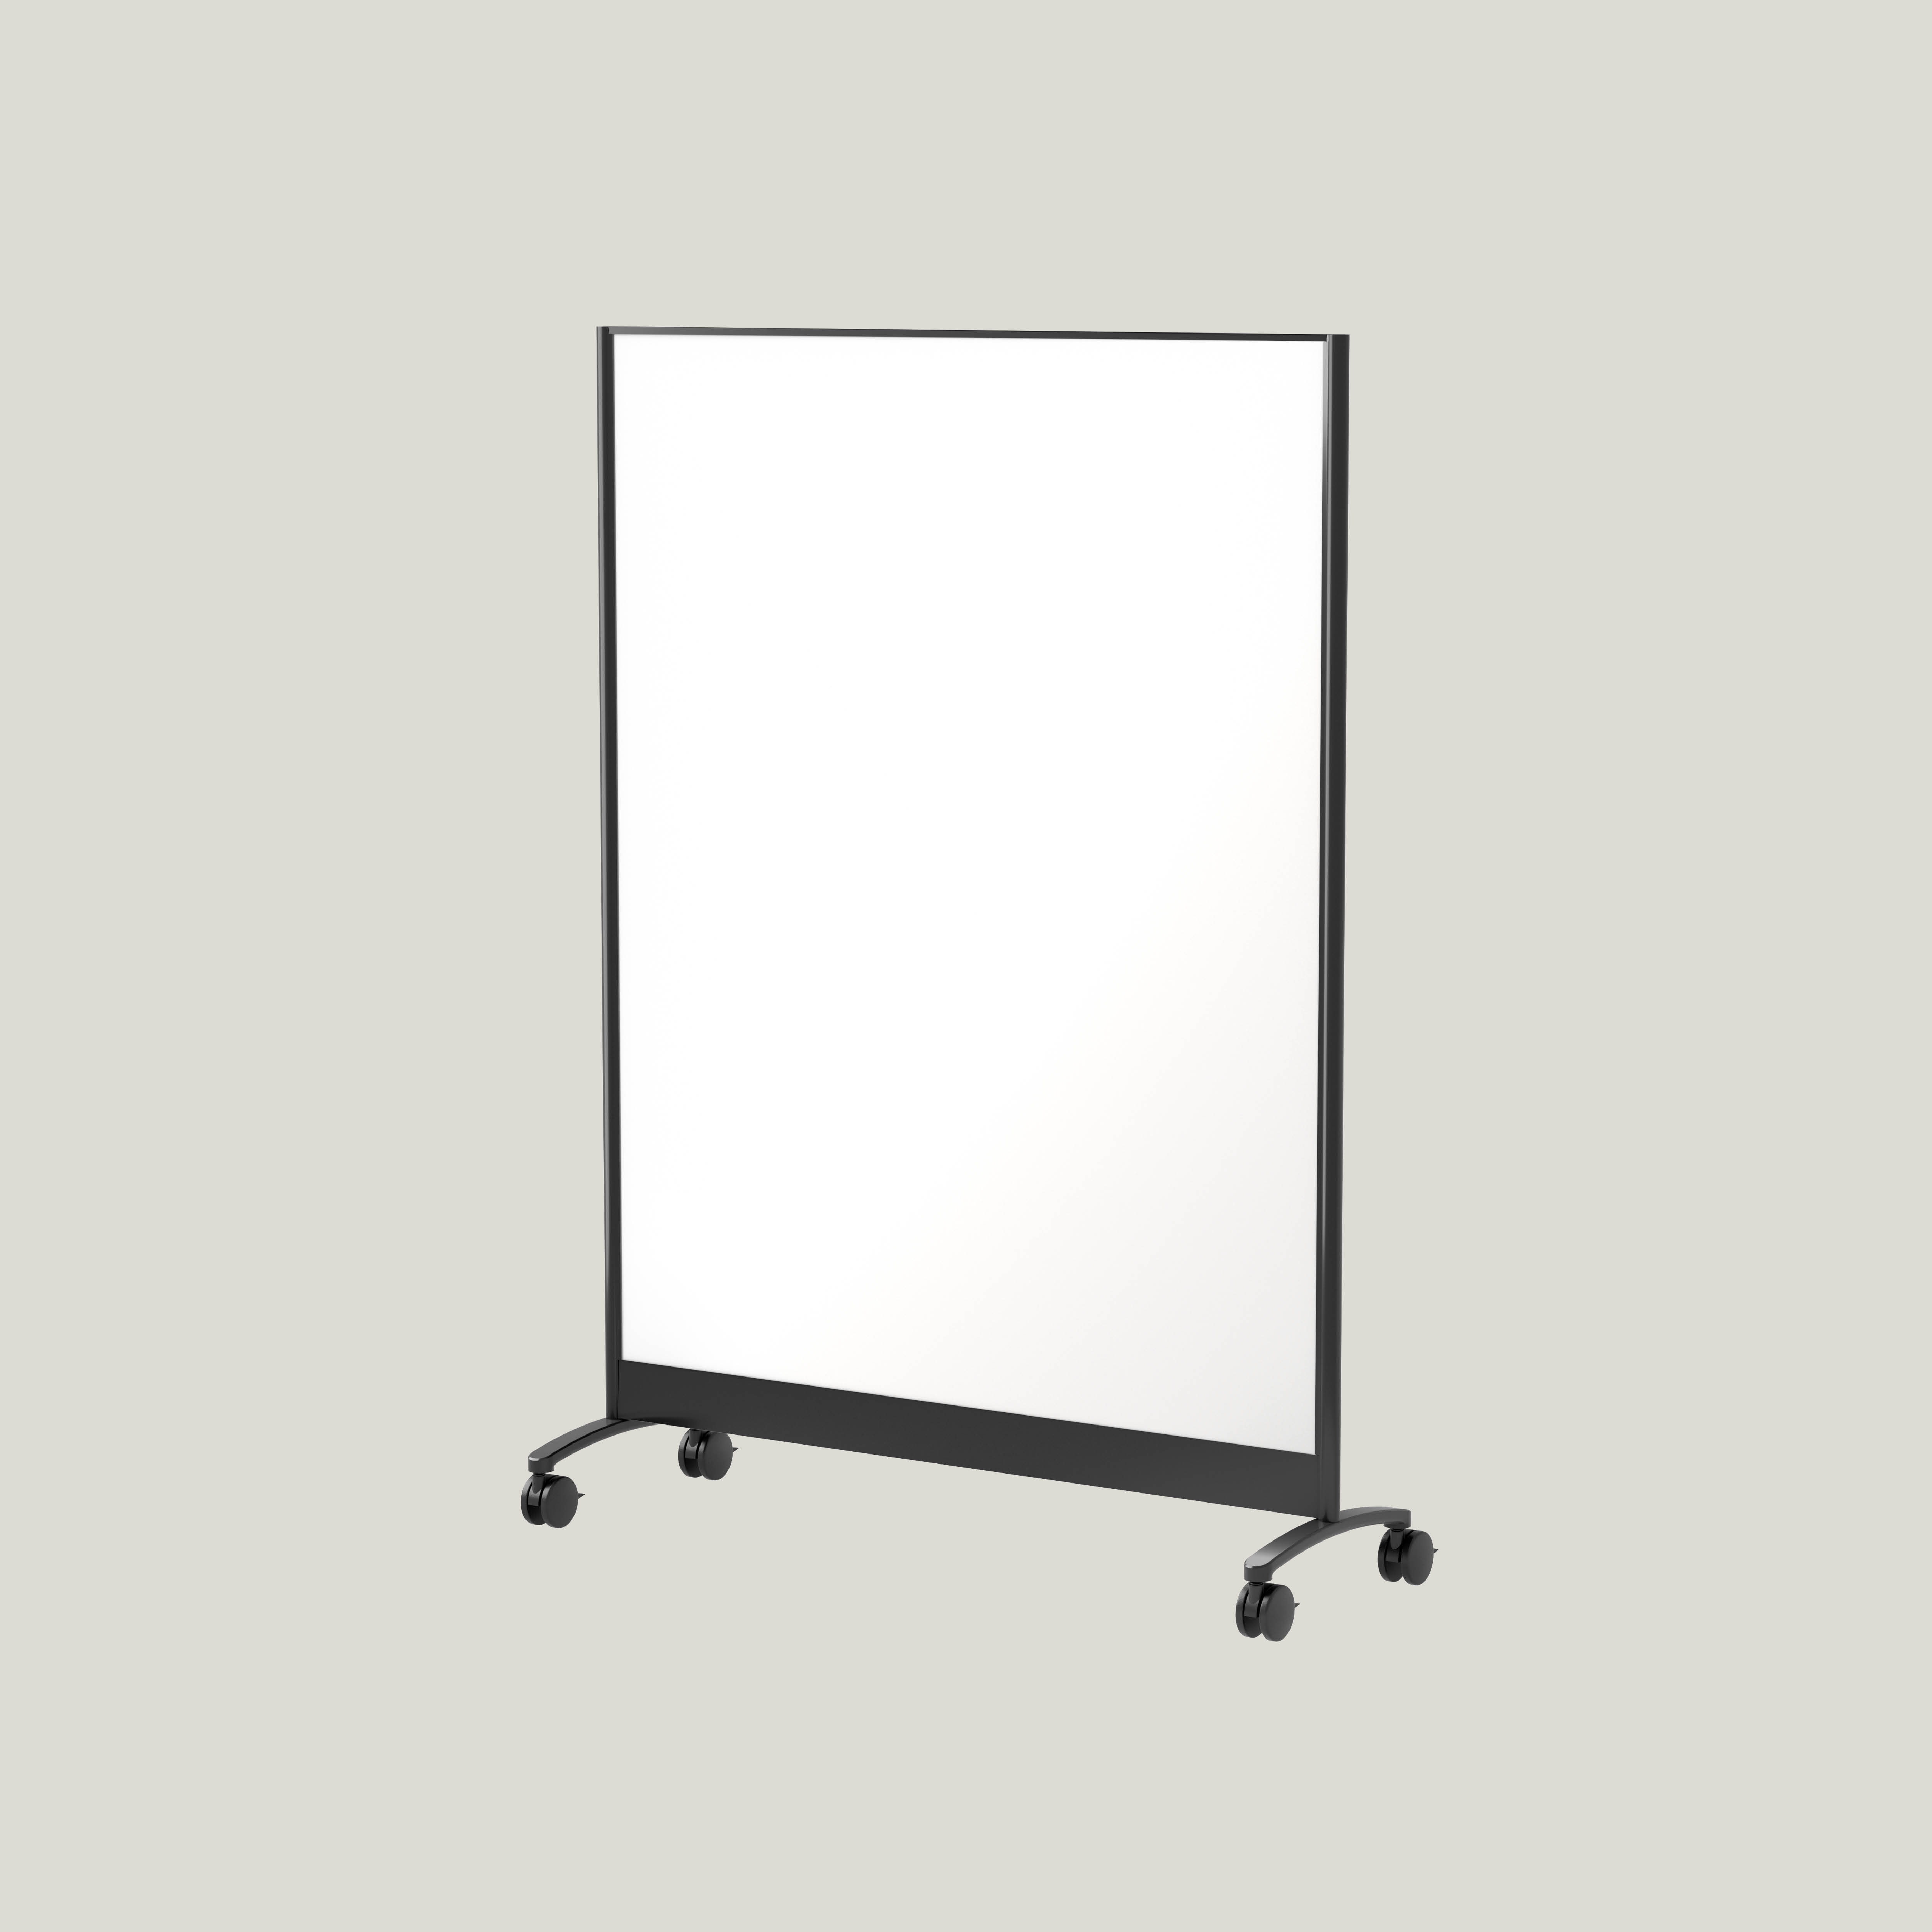 Double-sided dry erase board on wheels